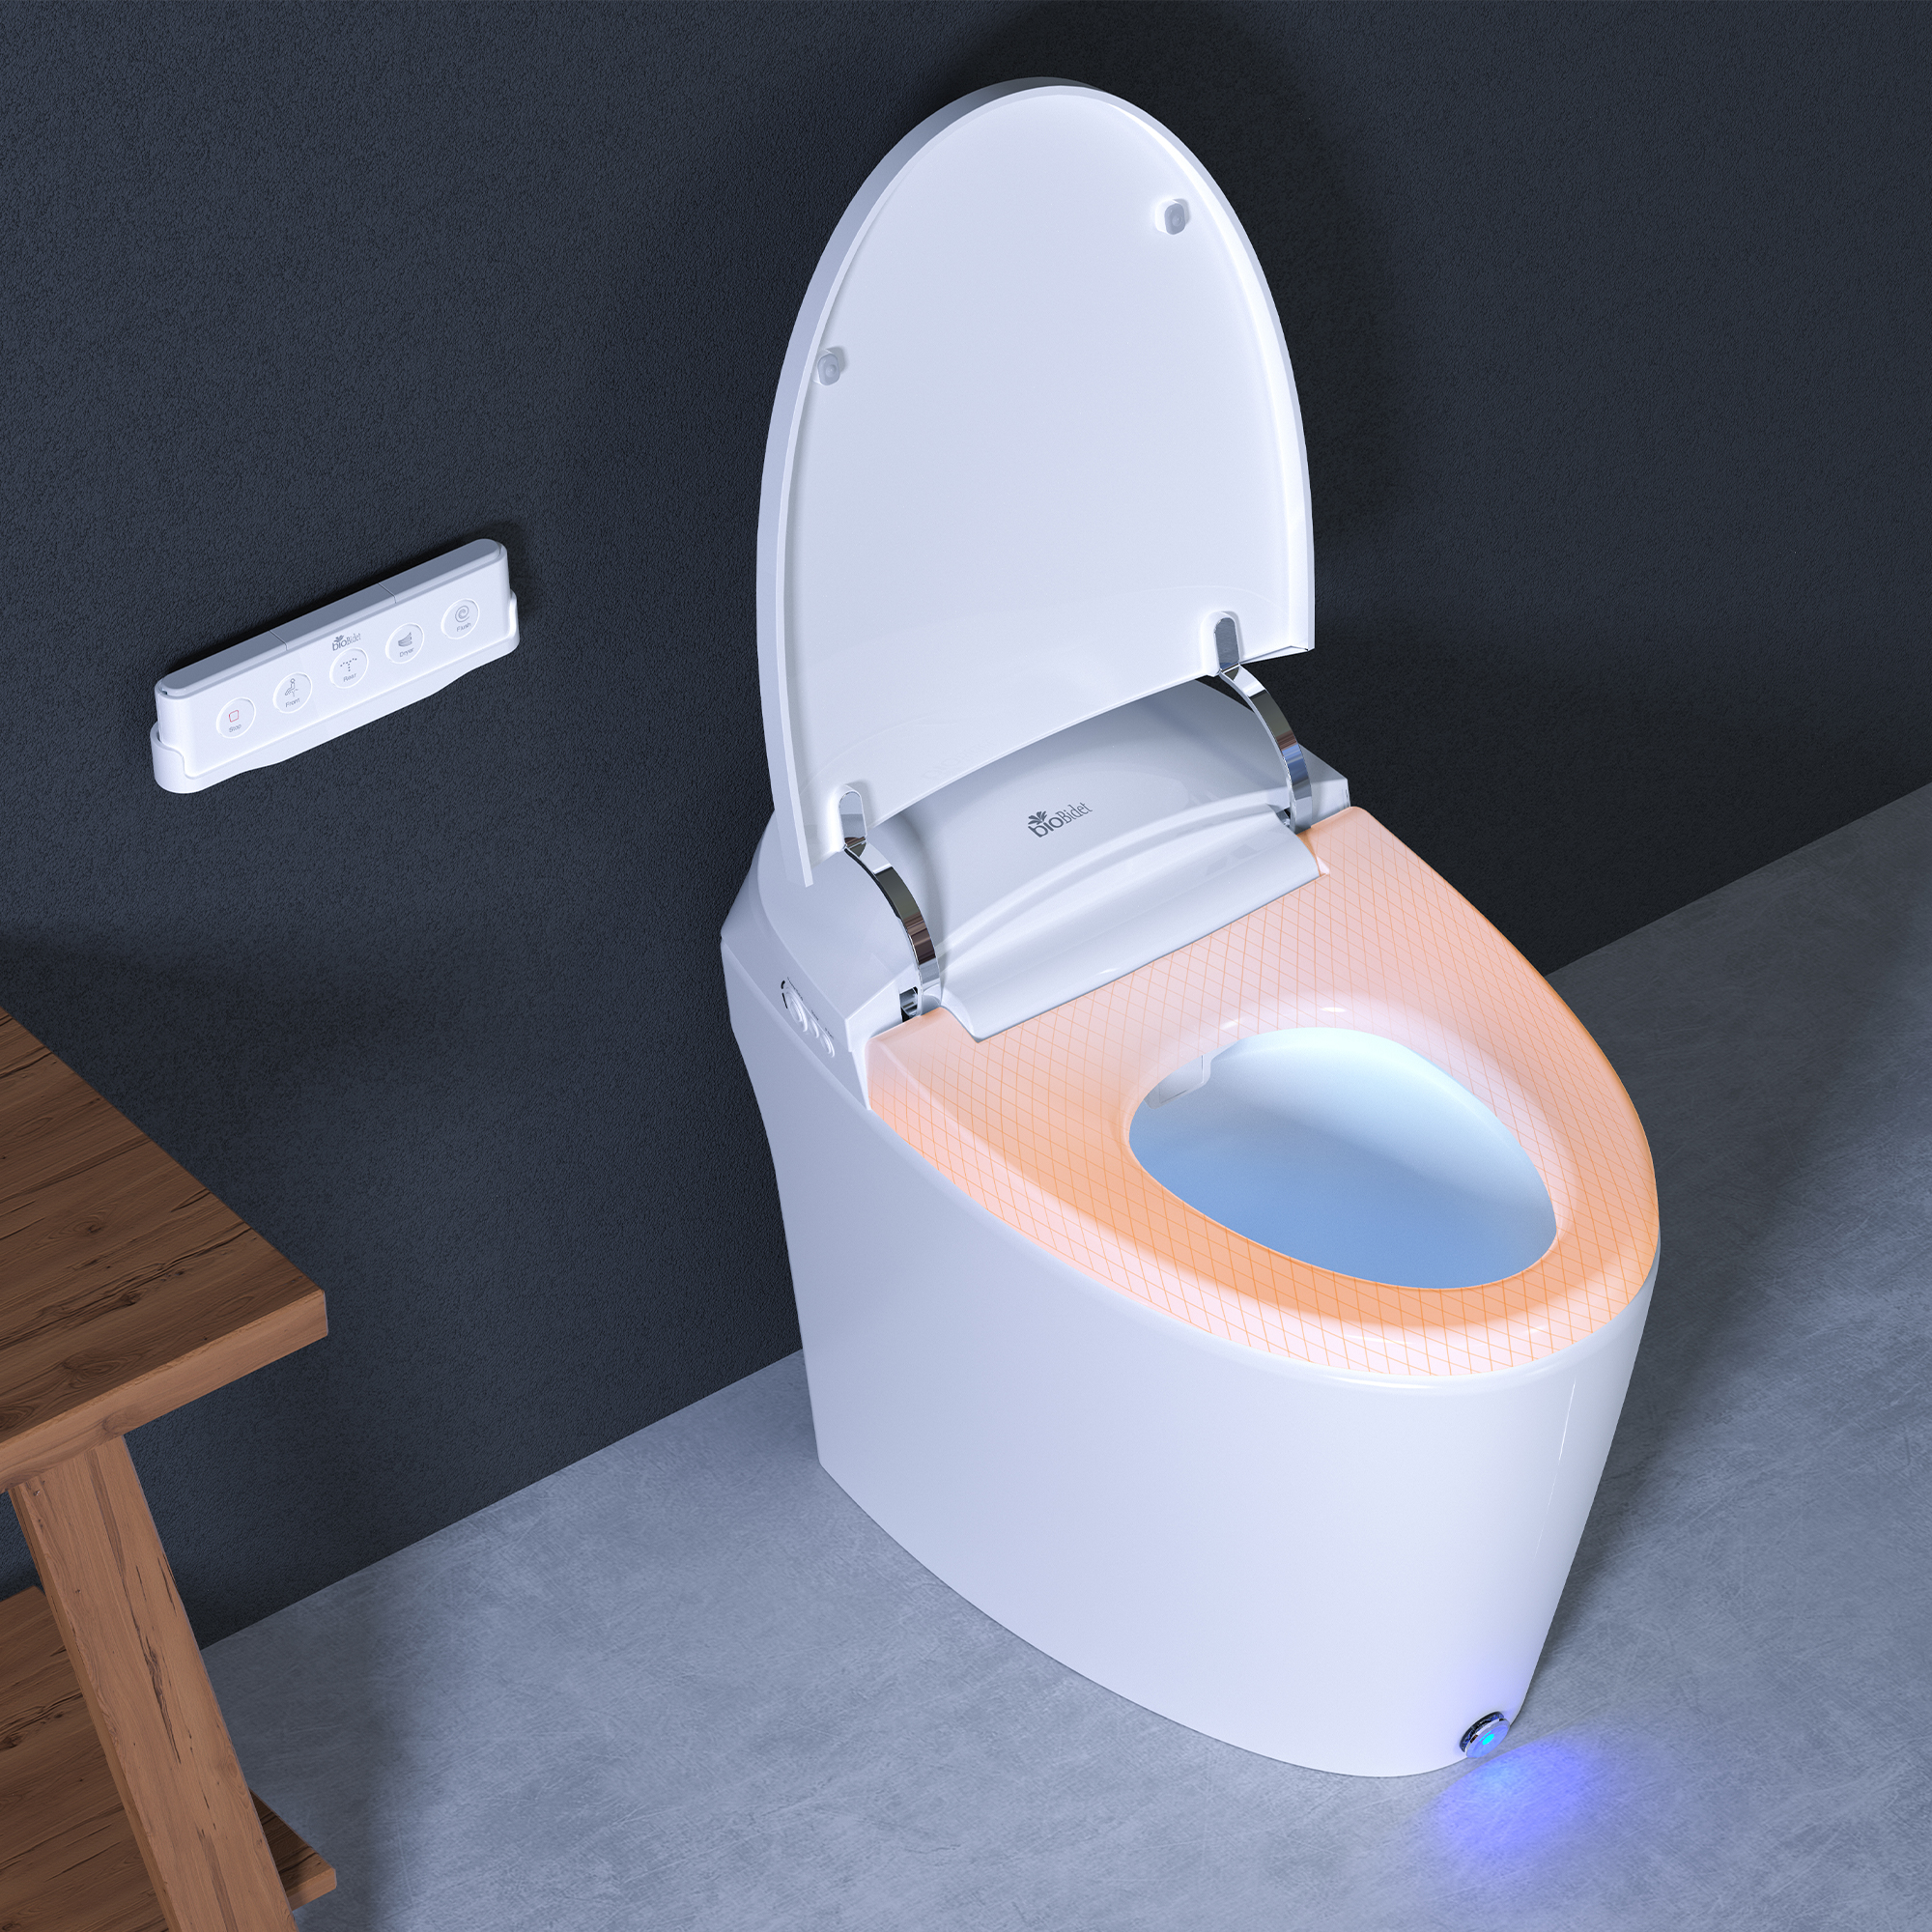 Discovery DLX Integrated Bidet Heated Seat